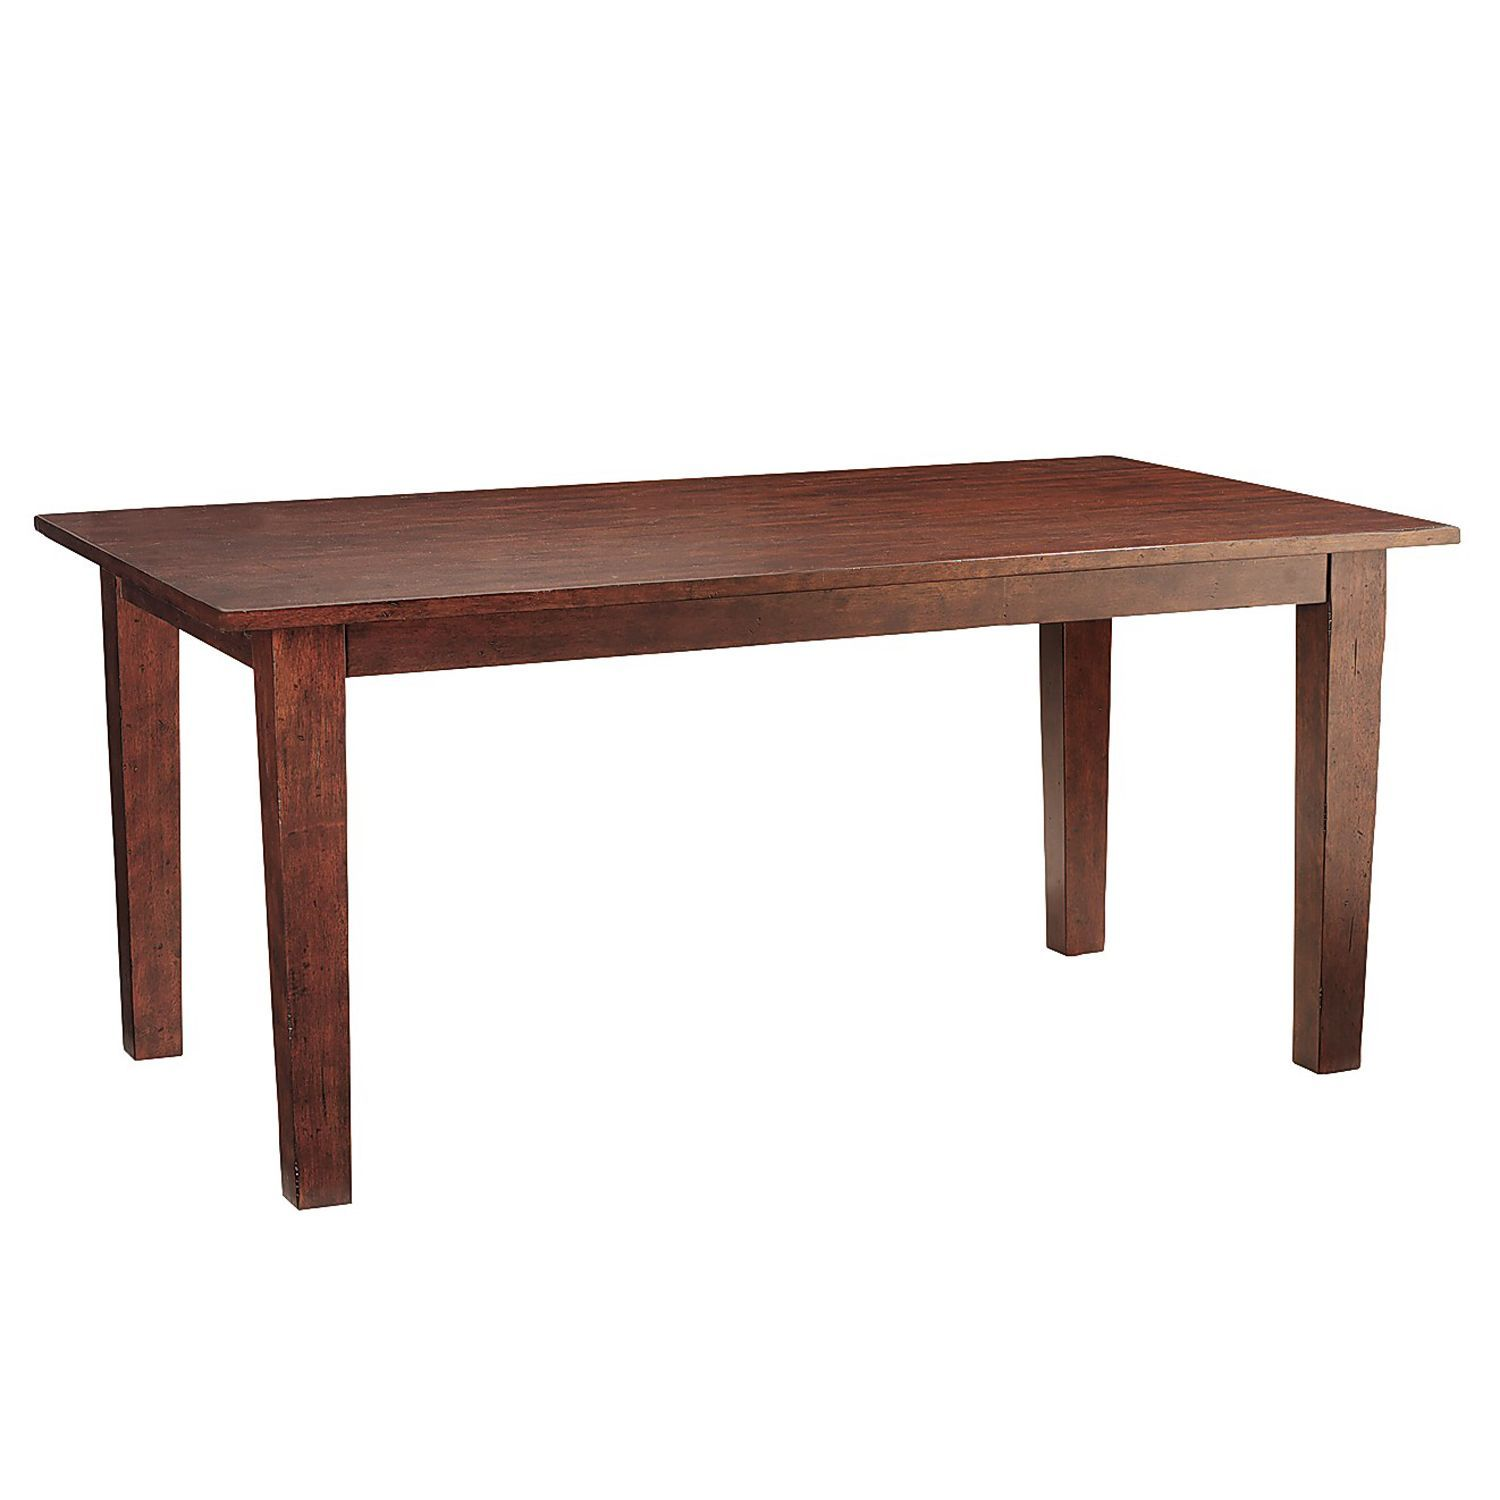 Contemporary Furniture Torrance: Torrance Mahogany Brown Dining Tables